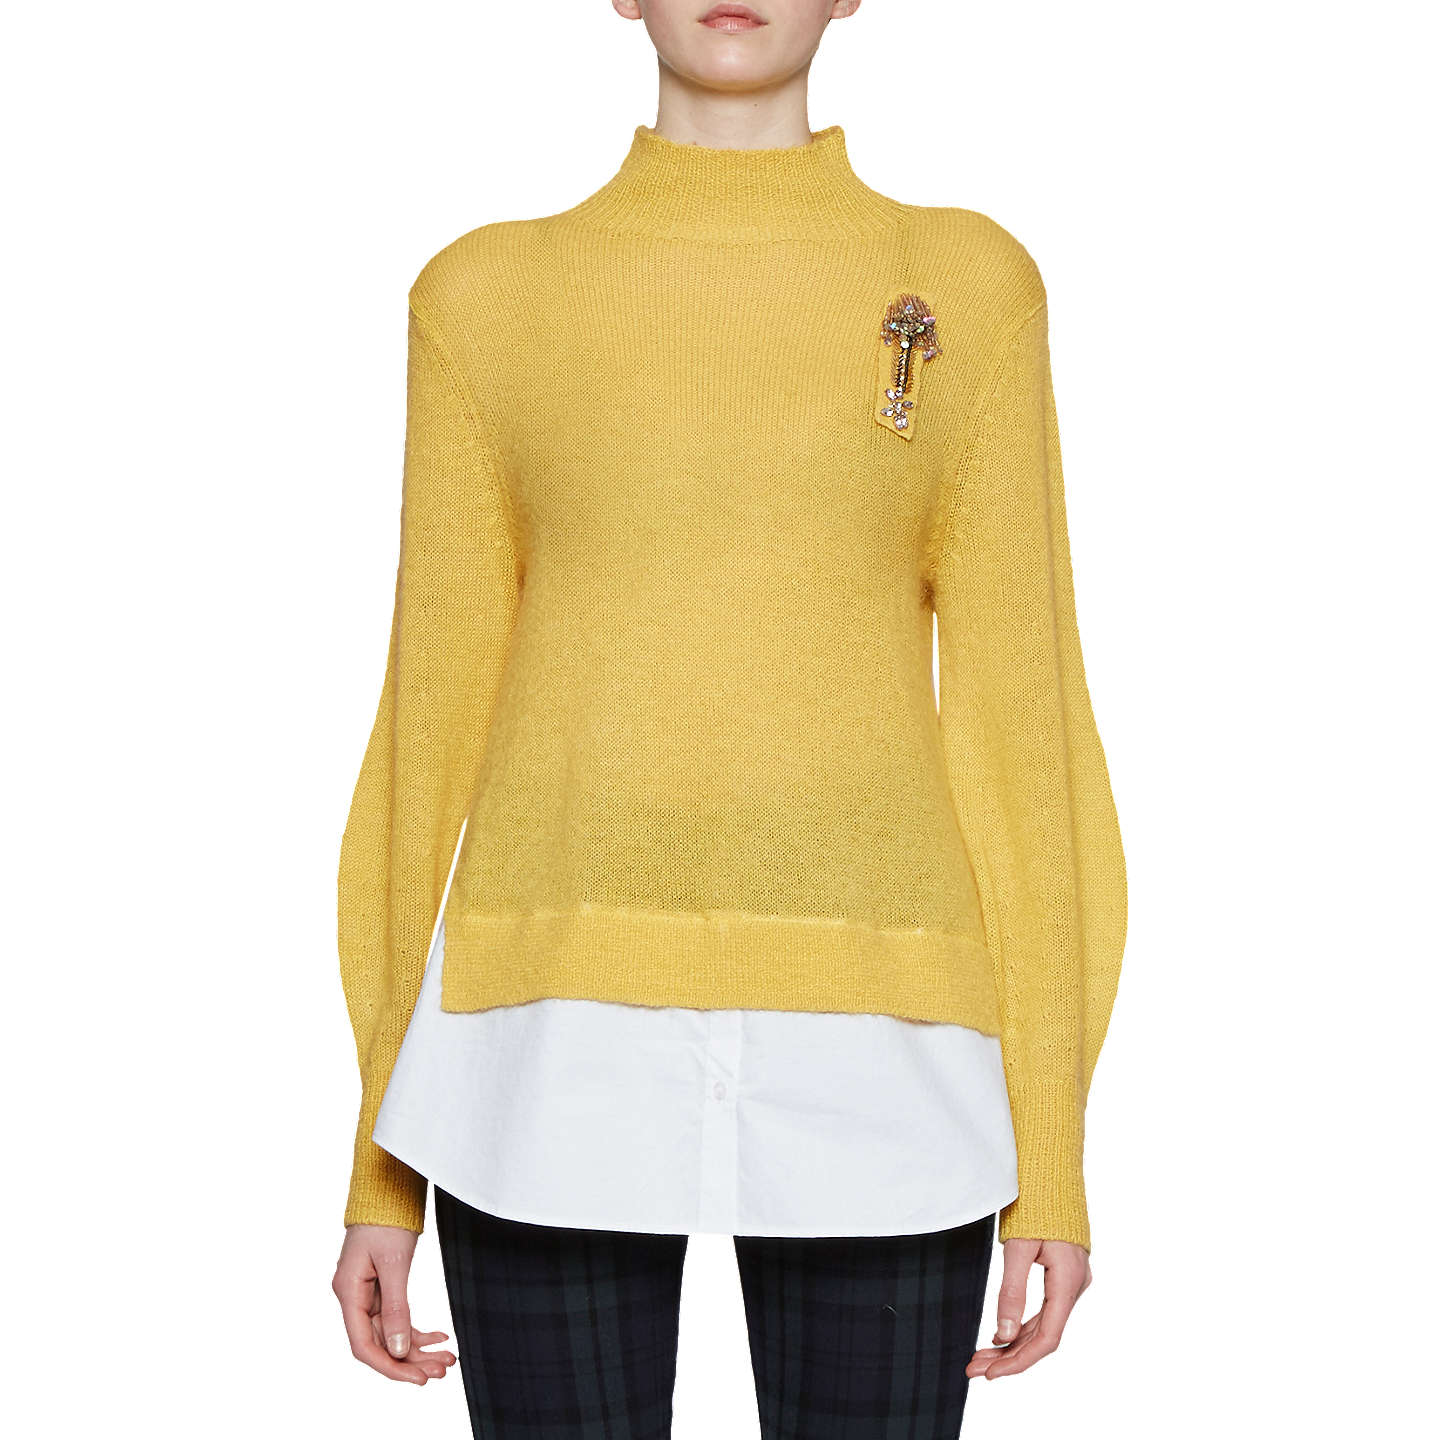 BuyFrench Connection Ava High Neck Jumper, Bright Yellow/White, S Online at johnlewis.com